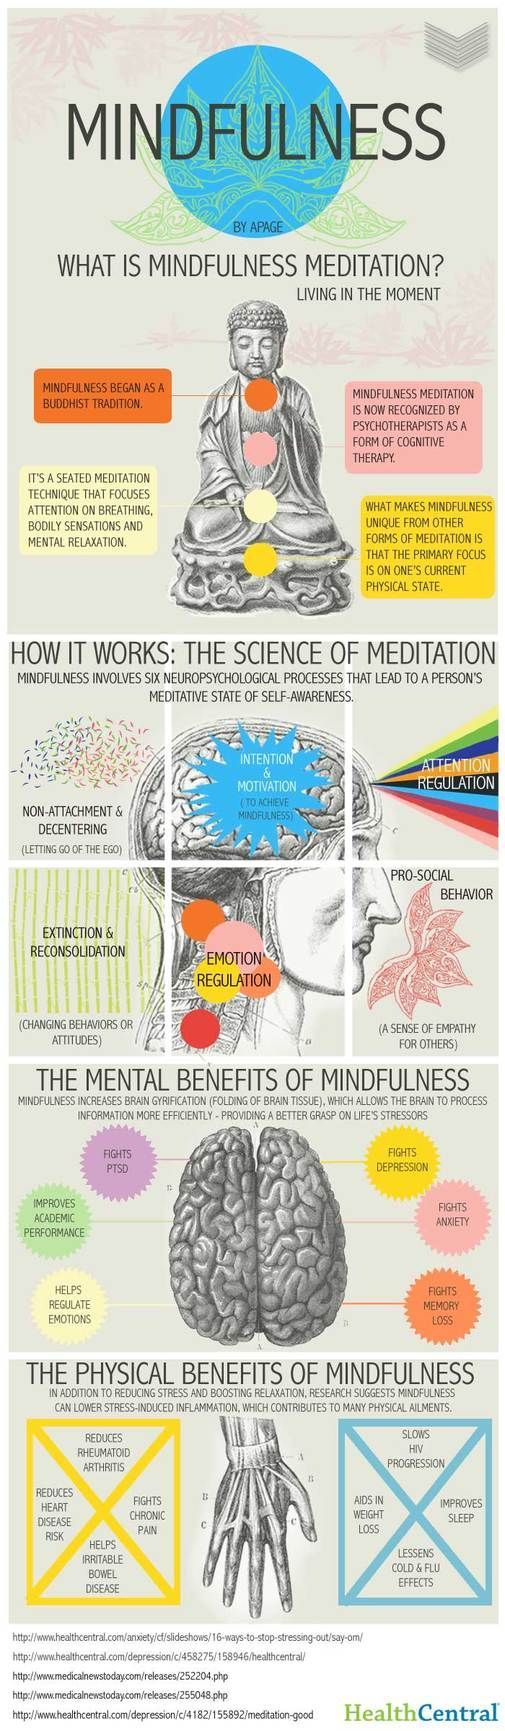 Mindful of Meditation and the Brain.